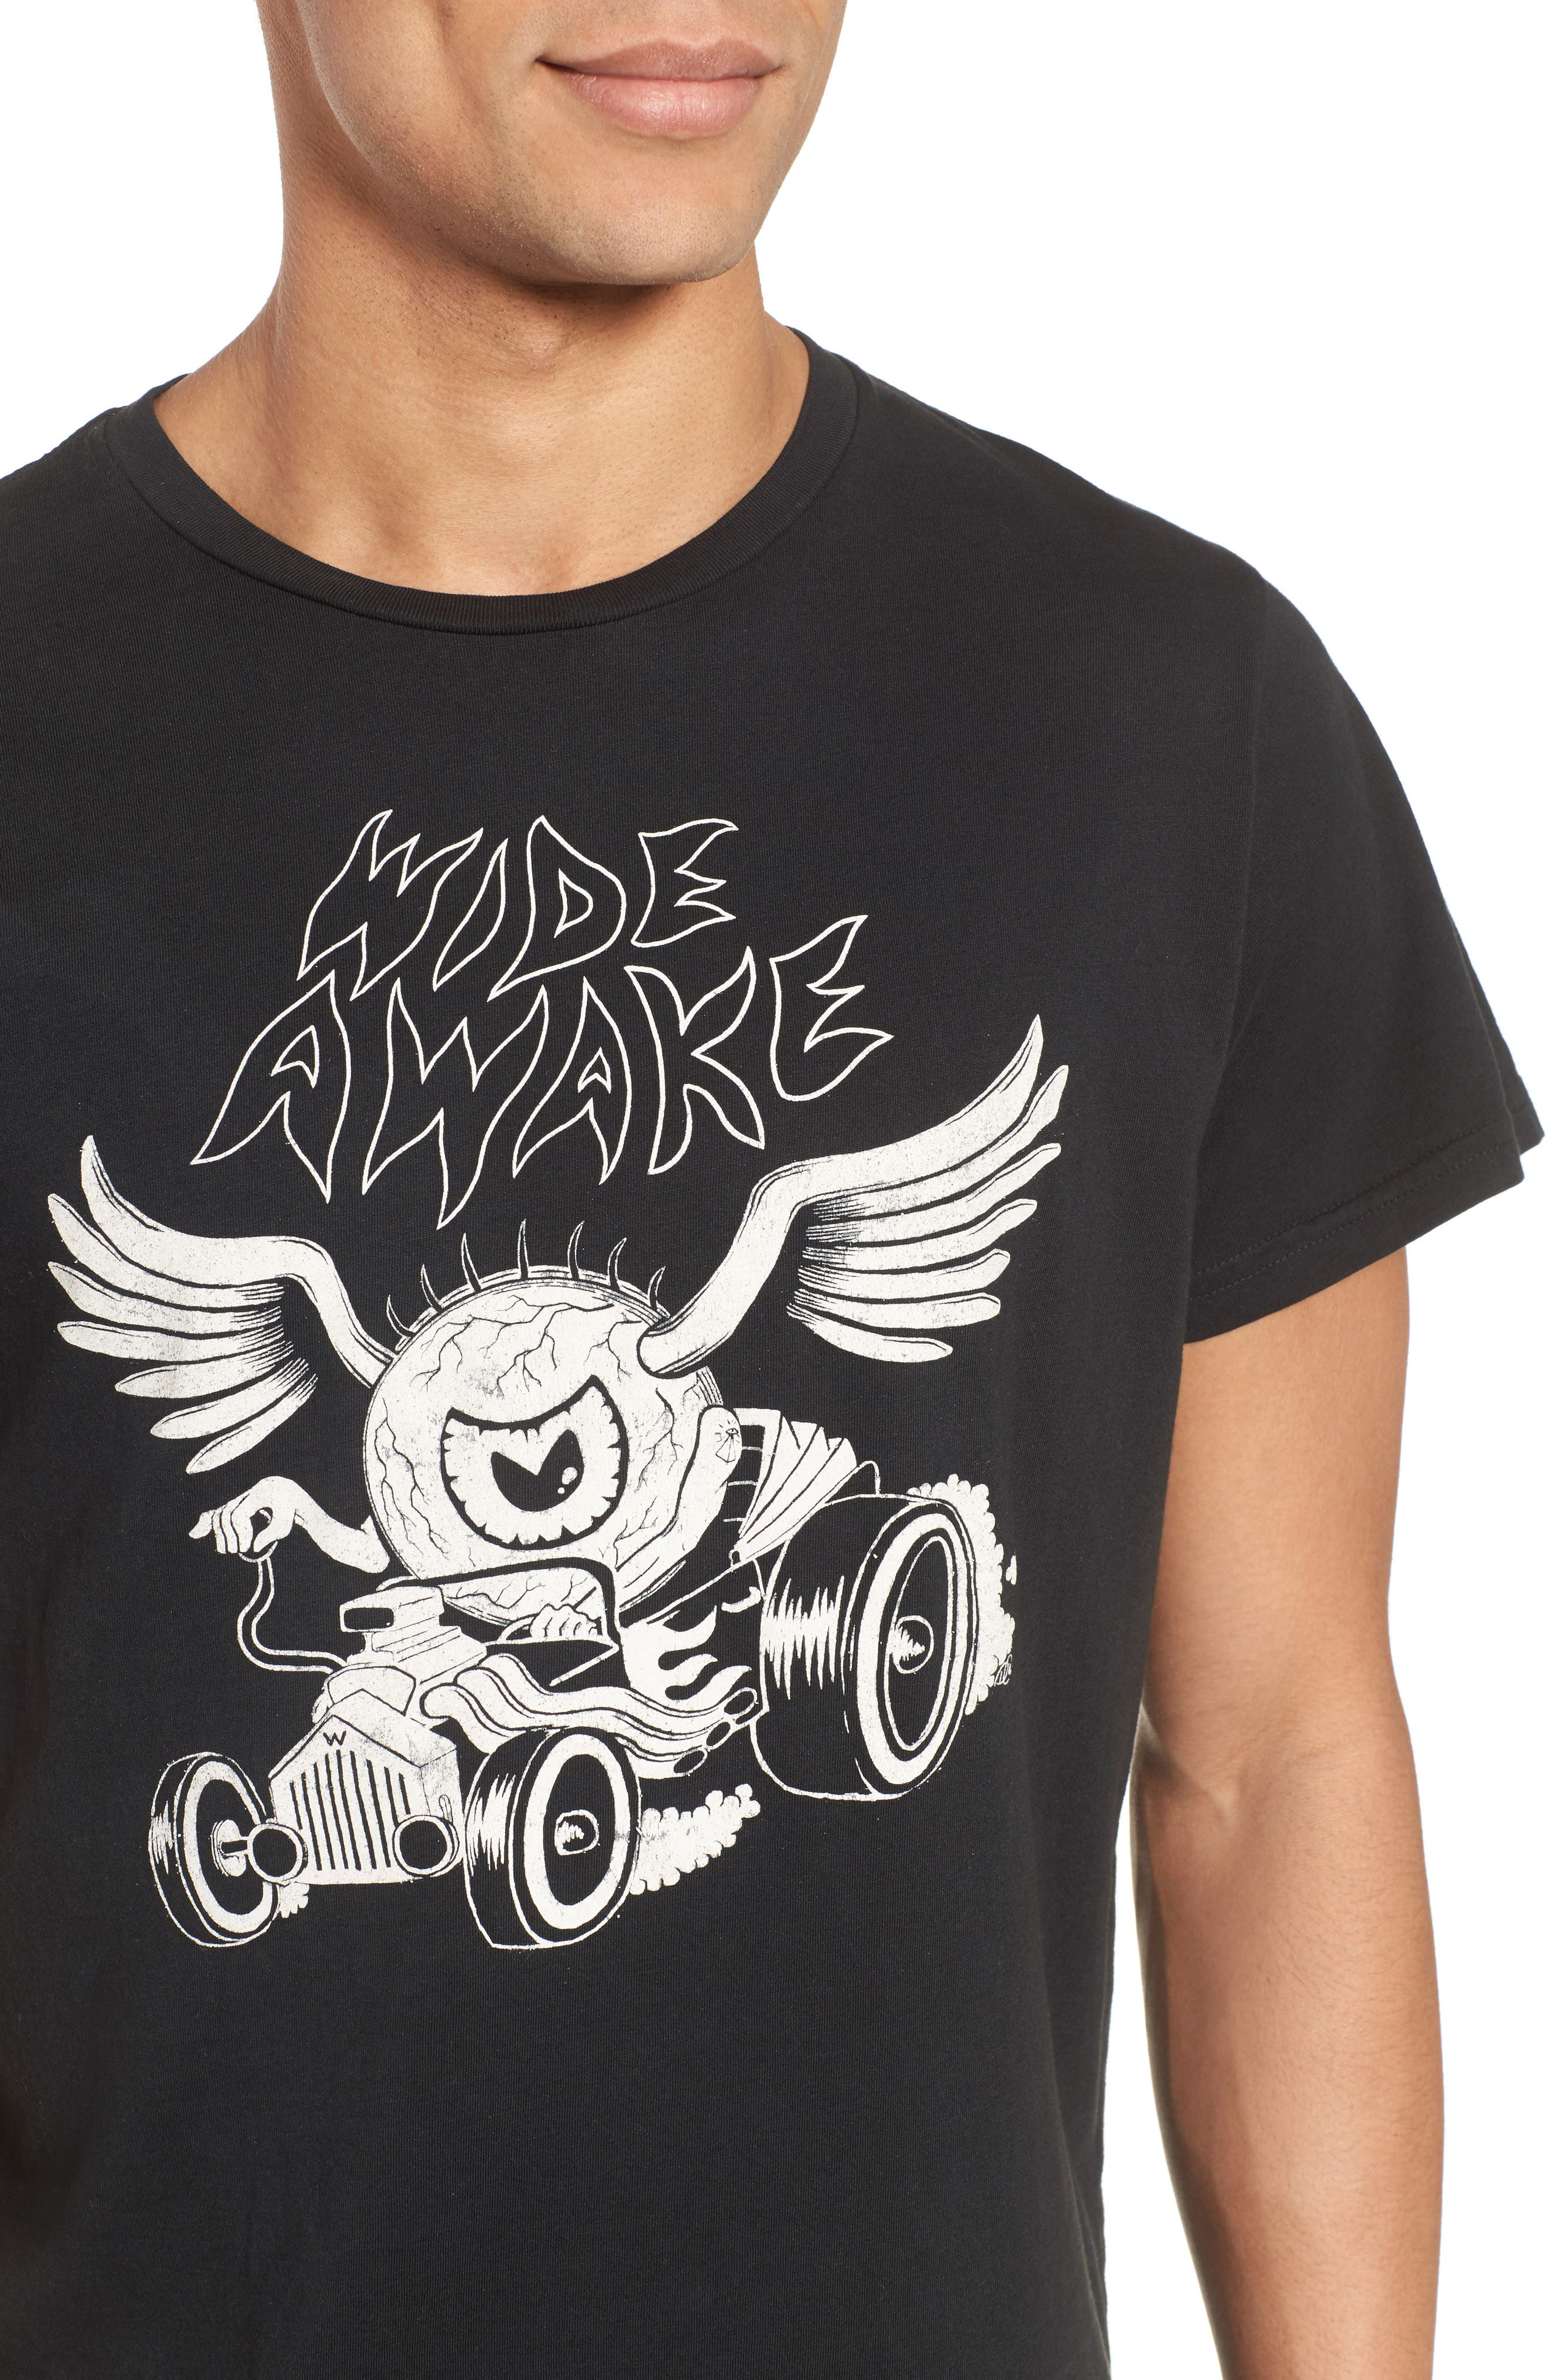 Wide Awake Graphic T-Shirt,                             Alternate thumbnail 4, color,                             DUSTY BLACK